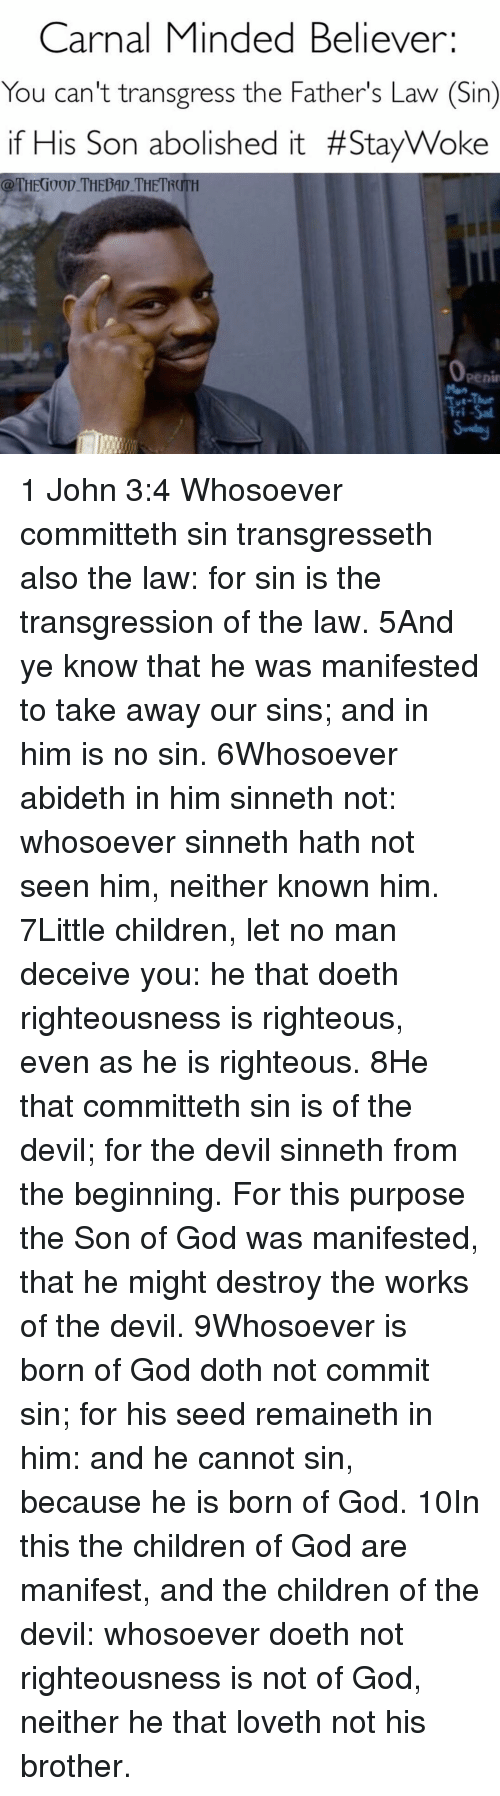 Memes, Righteousness, and 🤖: Carnal Minded Believer:  You can't transgress the Father's Law (Sin)  if His Son abolished it #Stay Woke  @THECI00D THEDAD THETROITH  Penin  Fri 1 John 3:4 Whosoever committeth sin transgresseth also the law: for sin is the transgression of the law. 5And ye know that he was manifested to take away our sins; and in him is no sin. 6Whosoever abideth in him sinneth not: whosoever sinneth hath not seen him, neither known him. 7Little children, let no man deceive you: he that doeth righteousness is righteous, even as he is righteous. 8He that committeth sin is of the devil; for the devil sinneth from the beginning. For this purpose the Son of God was manifested, that he might destroy the works of the devil. 9Whosoever is born of God doth not commit sin; for his seed remaineth in him: and he cannot sin, because he is born of God. 10In this the children of God are manifest, and the children of the devil: whosoever doeth not righteousness is not of God, neither he that loveth not his brother.